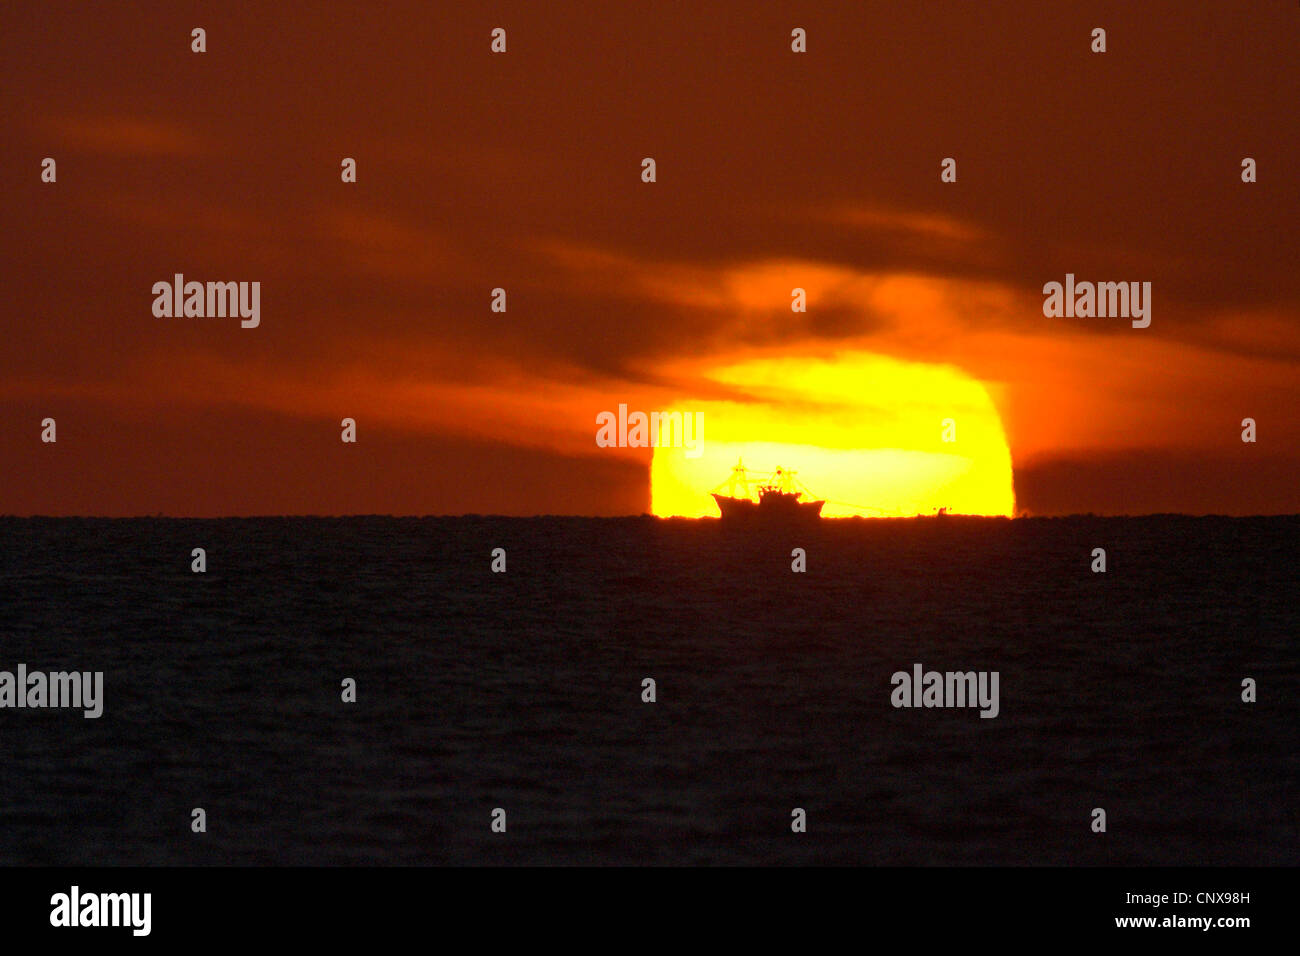 sunset with ship, Spain, Huelva - Stock Image